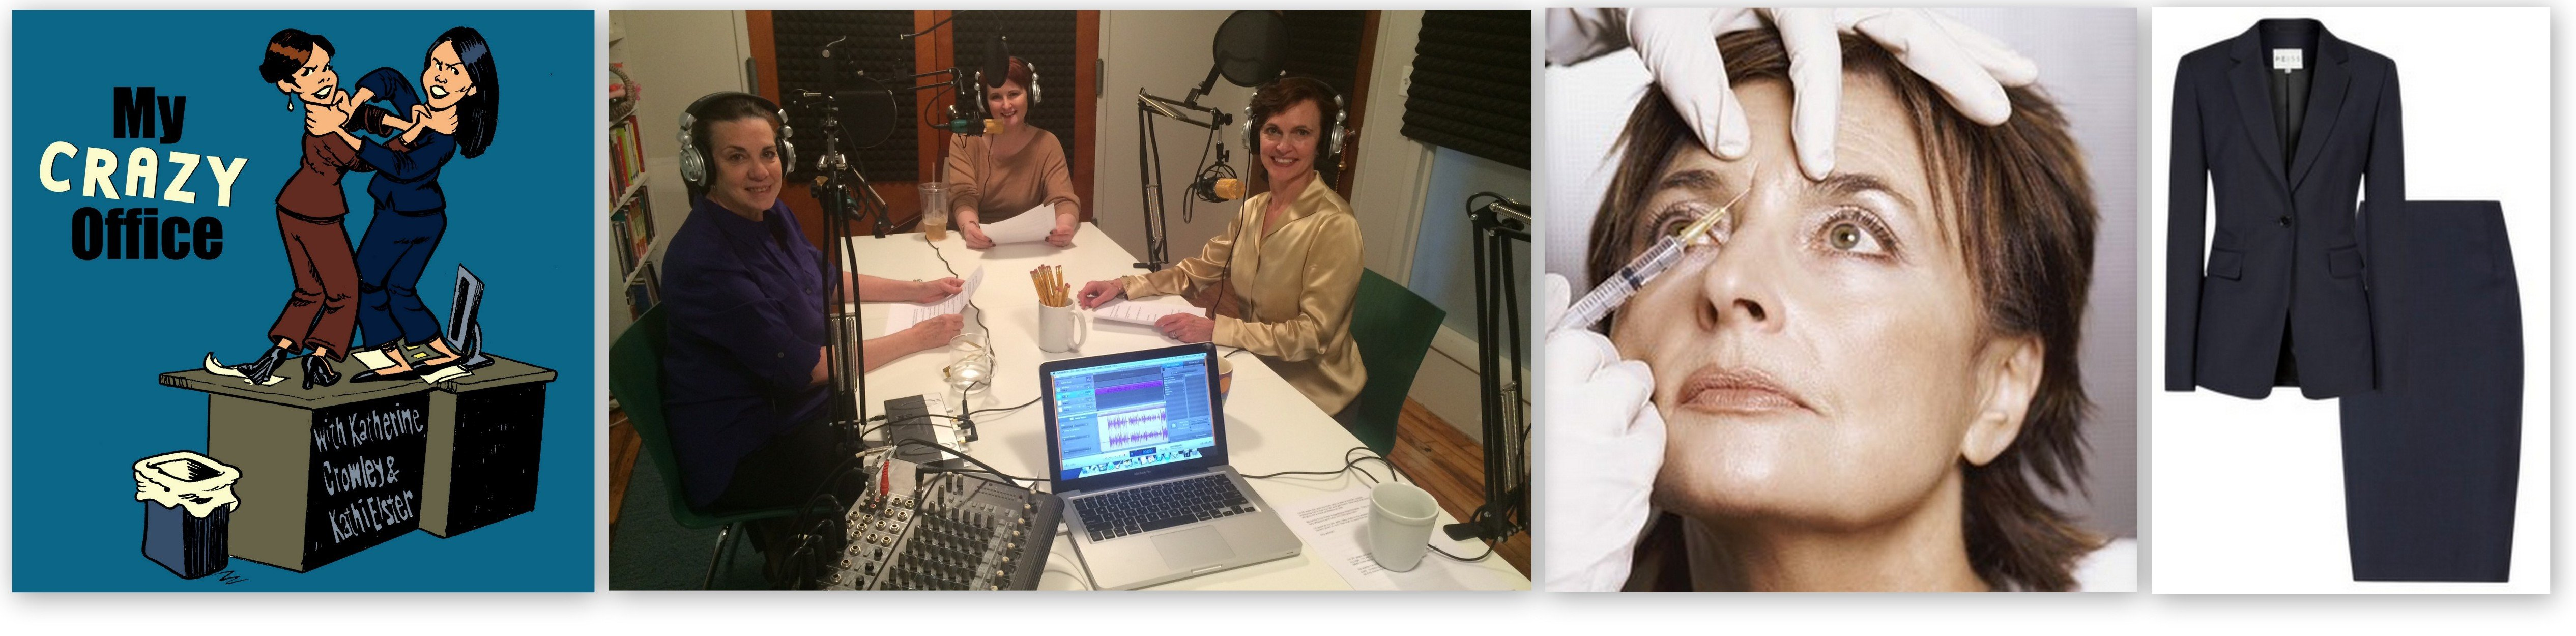 Botox & Business Suits: Listen to My Guest Appearance on My Crazy Office